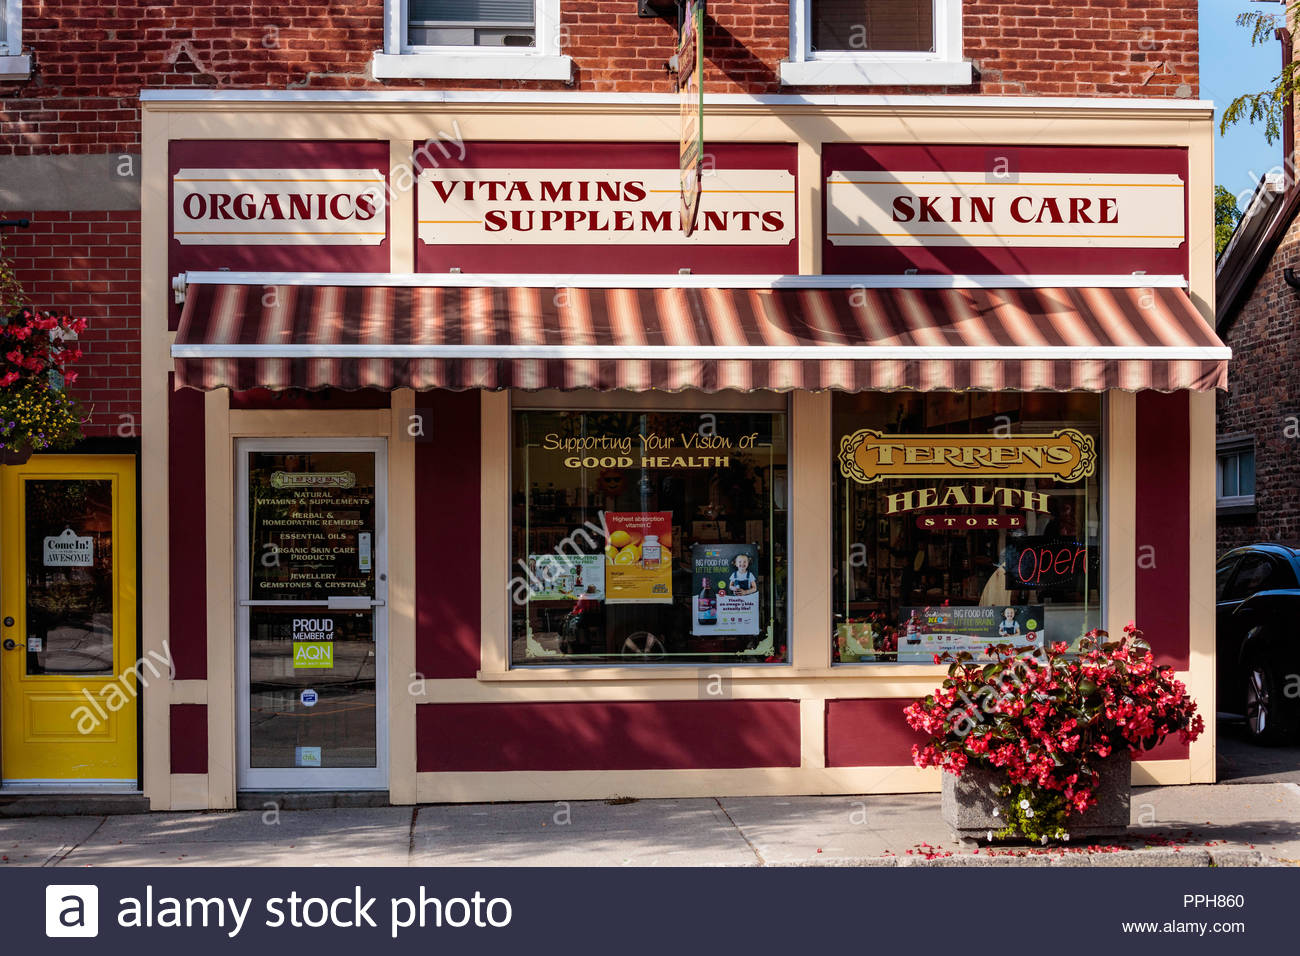 Health store on main Street in the village small town of Orono Ontario Canada. Stock Photo